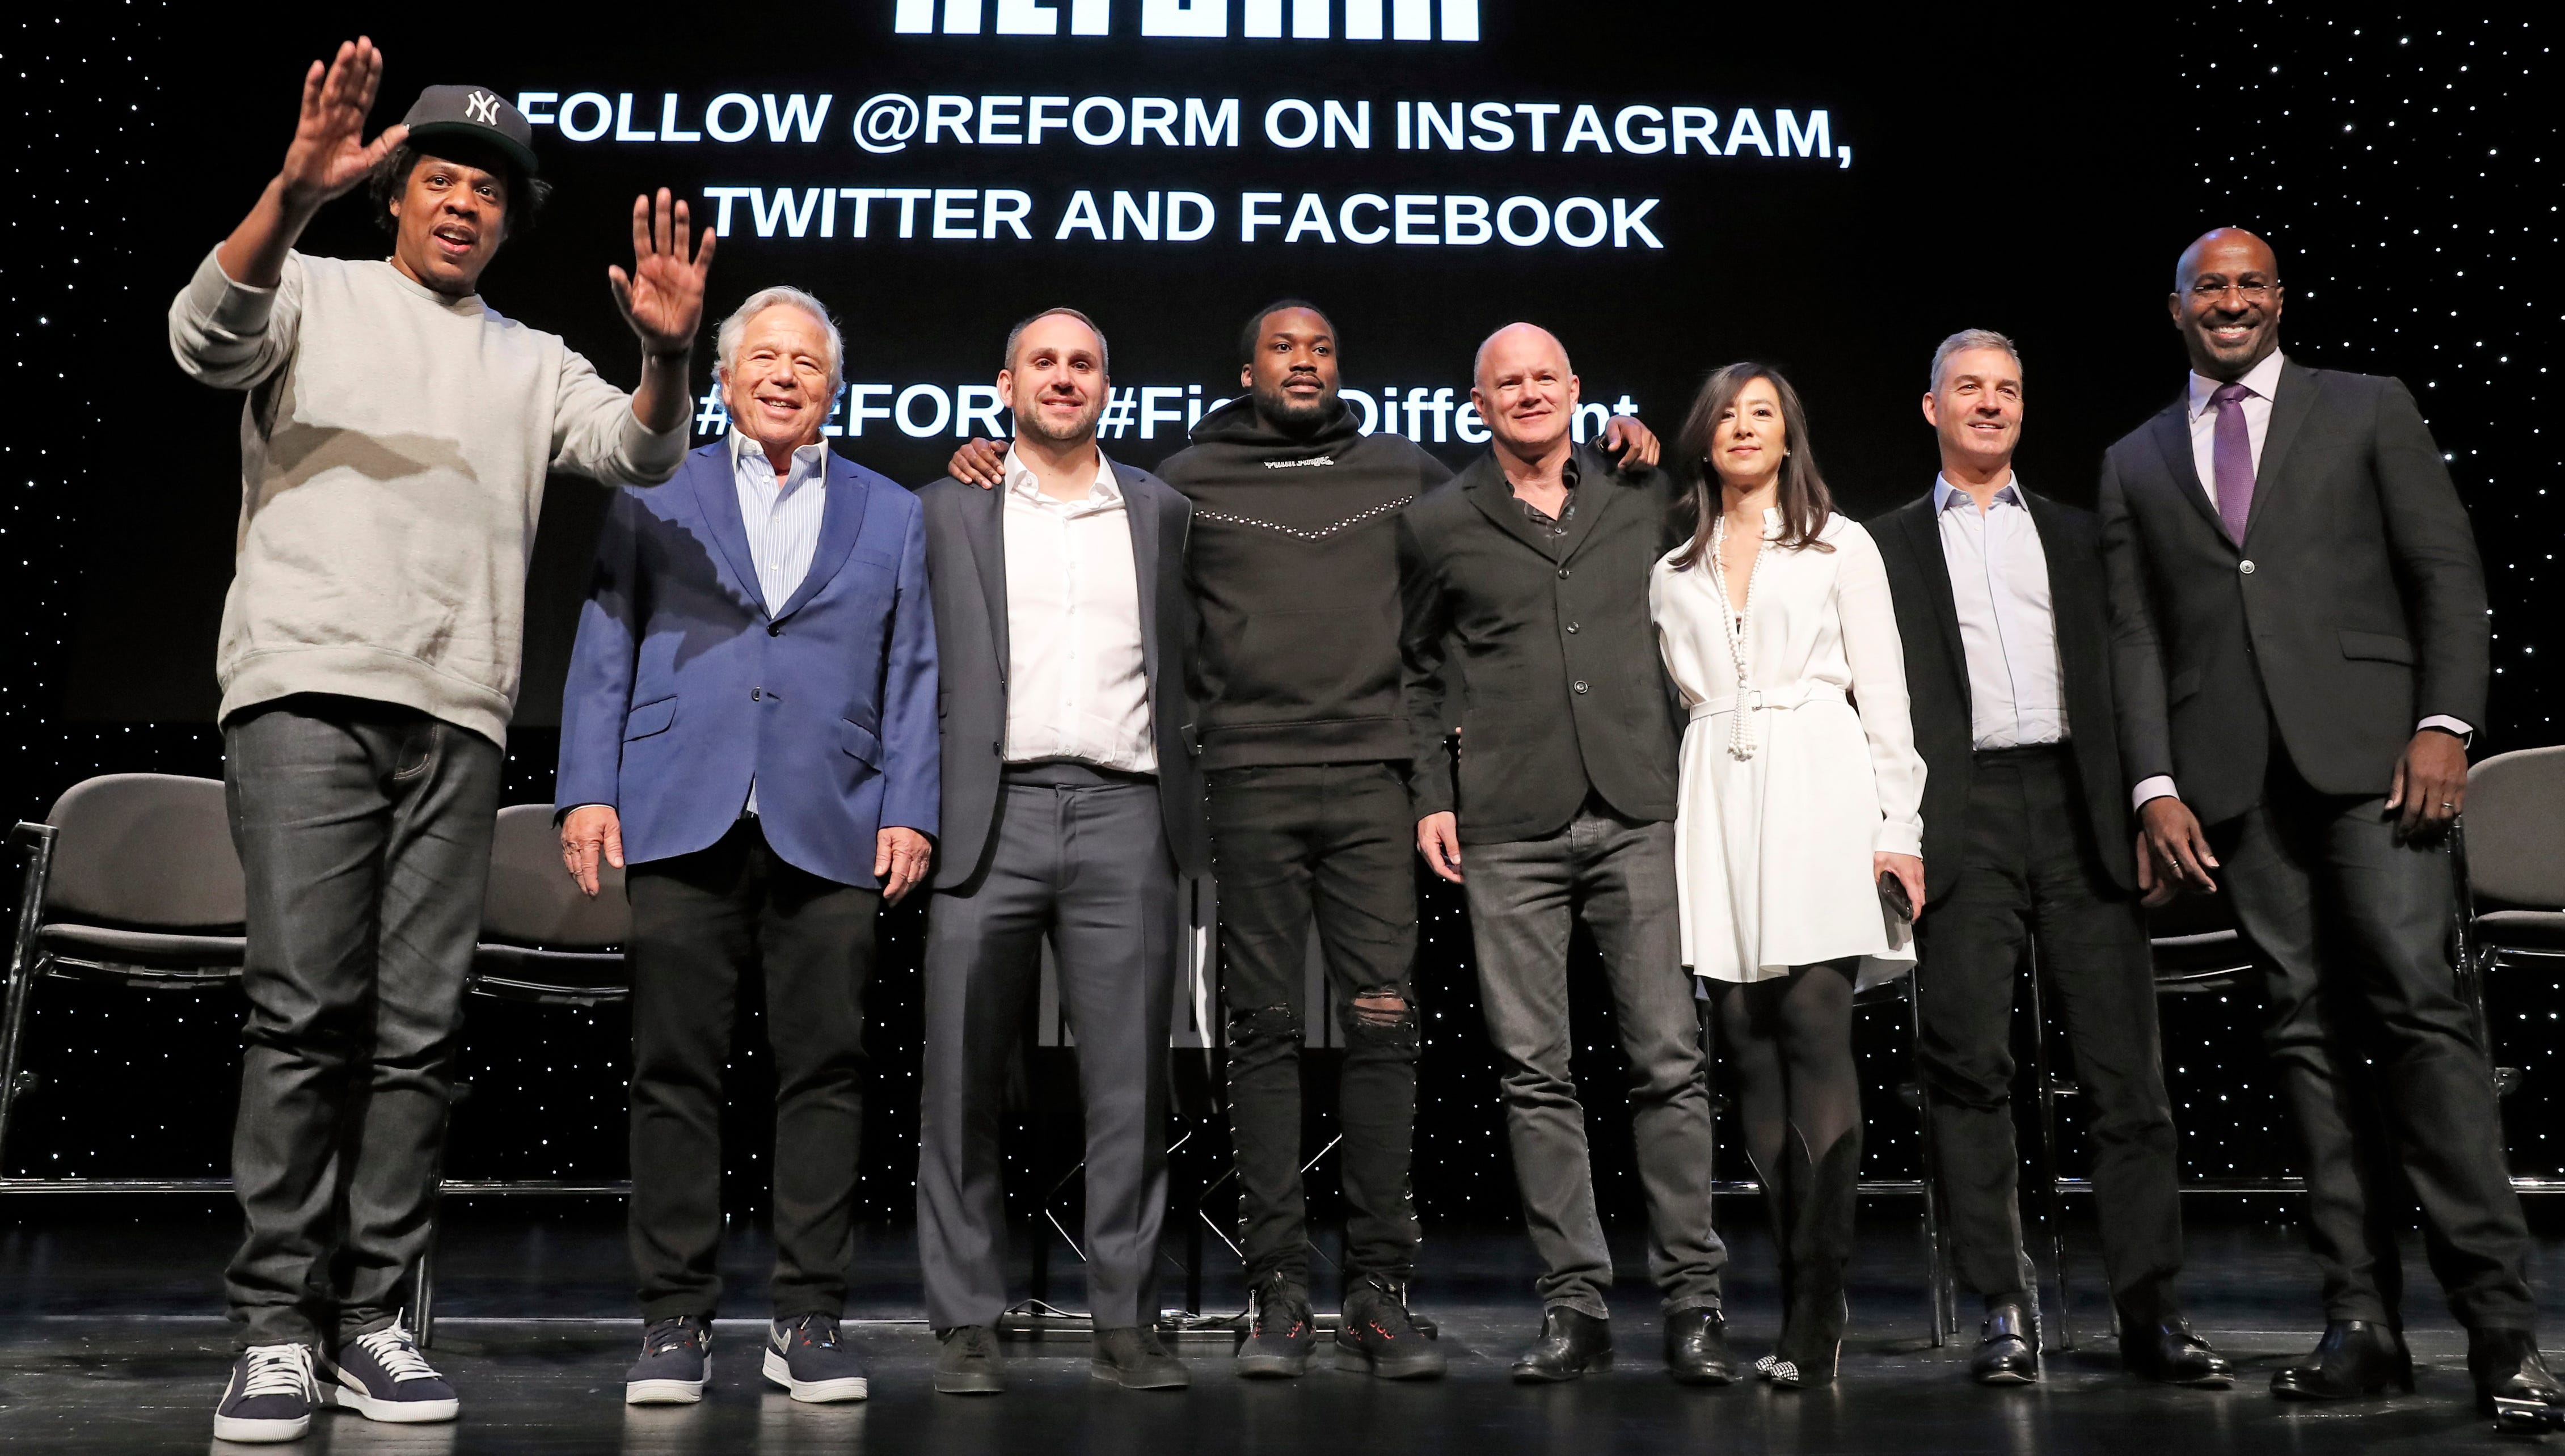 """Entrepreneur ad recording artist Shawn """"Jay-Z"""" Carter, from left, gestures as he poses with New England Patriots owner Robert Kraft, Philadelphia 76ers co-owner and Fanatics executive chairman Michael Rubin, recording artist Meek Mill, Galaxy Digital CEO and founder Michael Novogratz, Brooklyn Nets co-owner Clara Wu Tsai, Third Point CEO and founder Daniel S. Loeb, and REFORM Alliance CEO and political activist Van Jones after the group announced a partnership to transform the American criminal justice system, Wednesday, Jan. 23, 2019, in New York."""